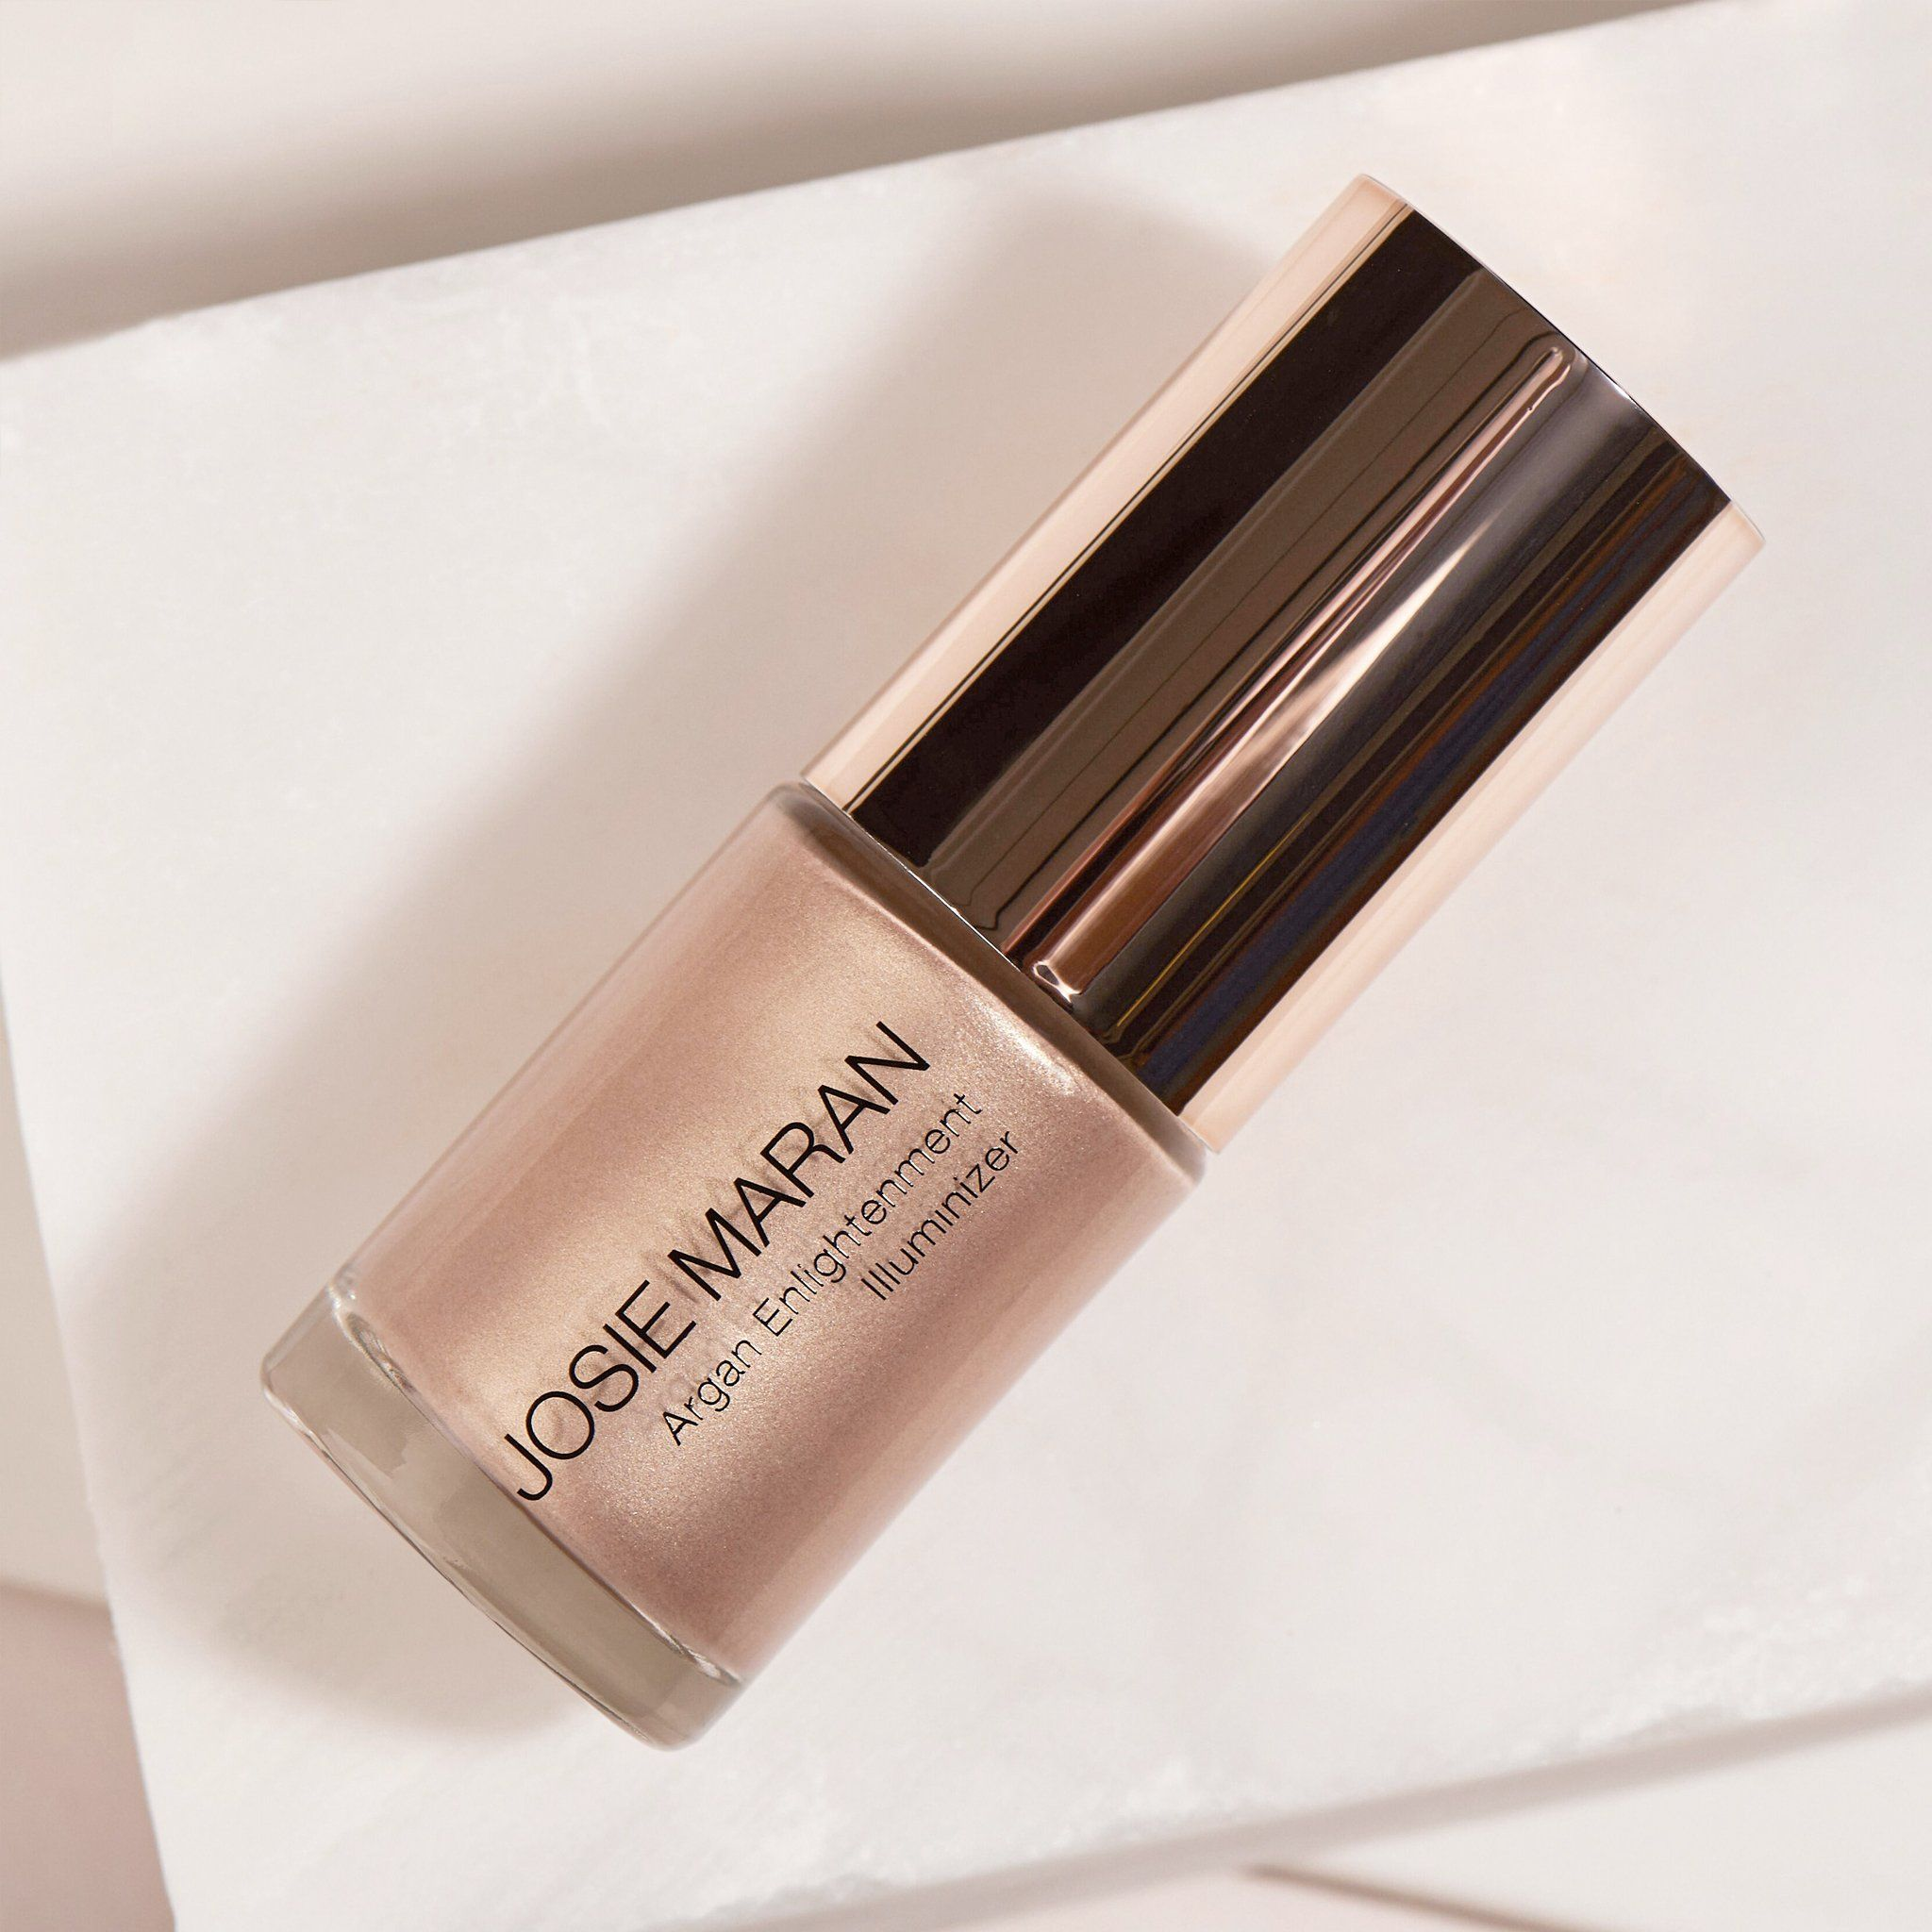 Argan Enlightenment Illuminizer